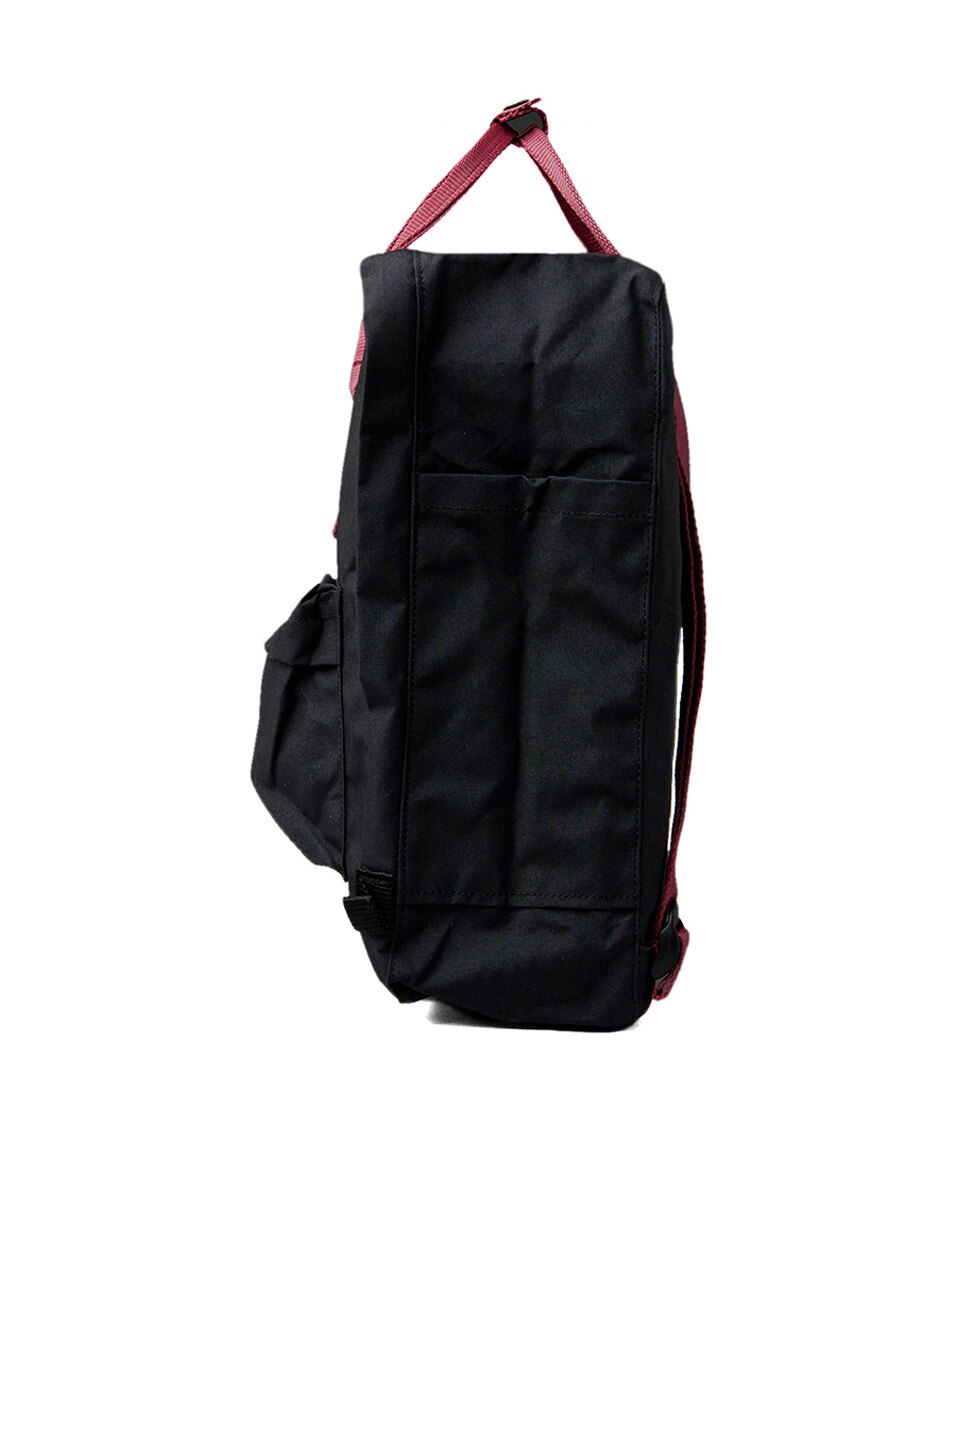 【Fjallraven Kanken 】K?nken Classic 550-326 Black & Ox Red 黑公牛紅 2